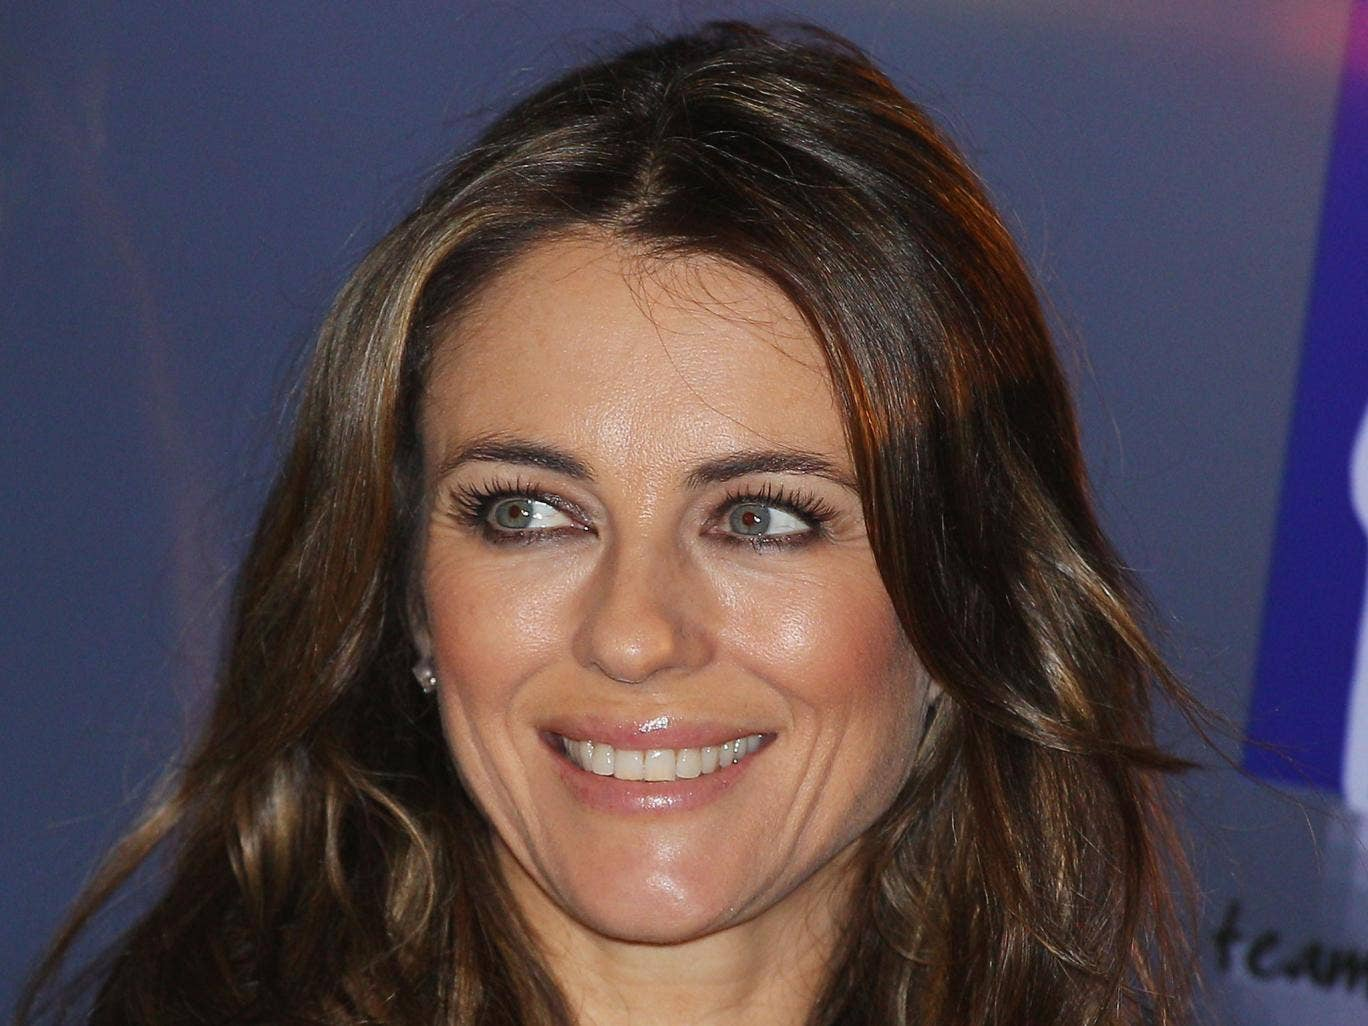 Liz Hurley is selling her shows for charity